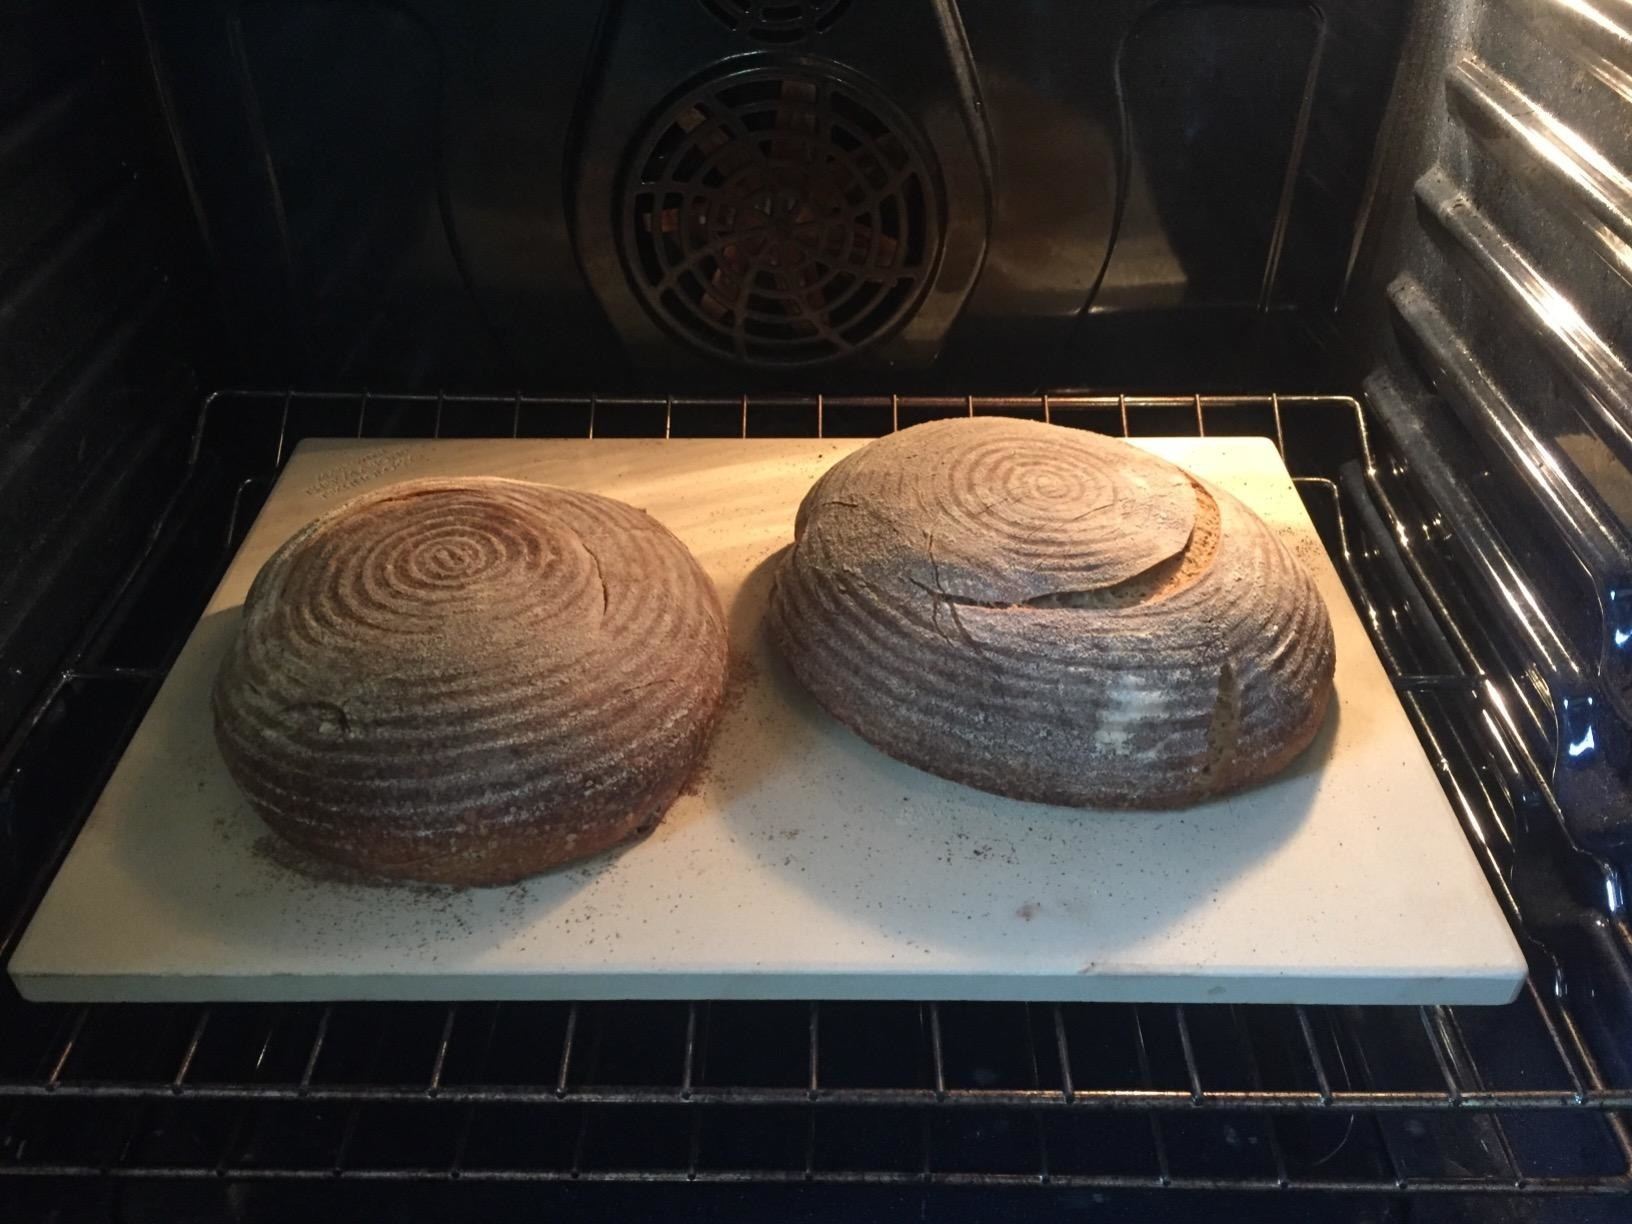 Two loaves of bread cooking on a pizza stone.